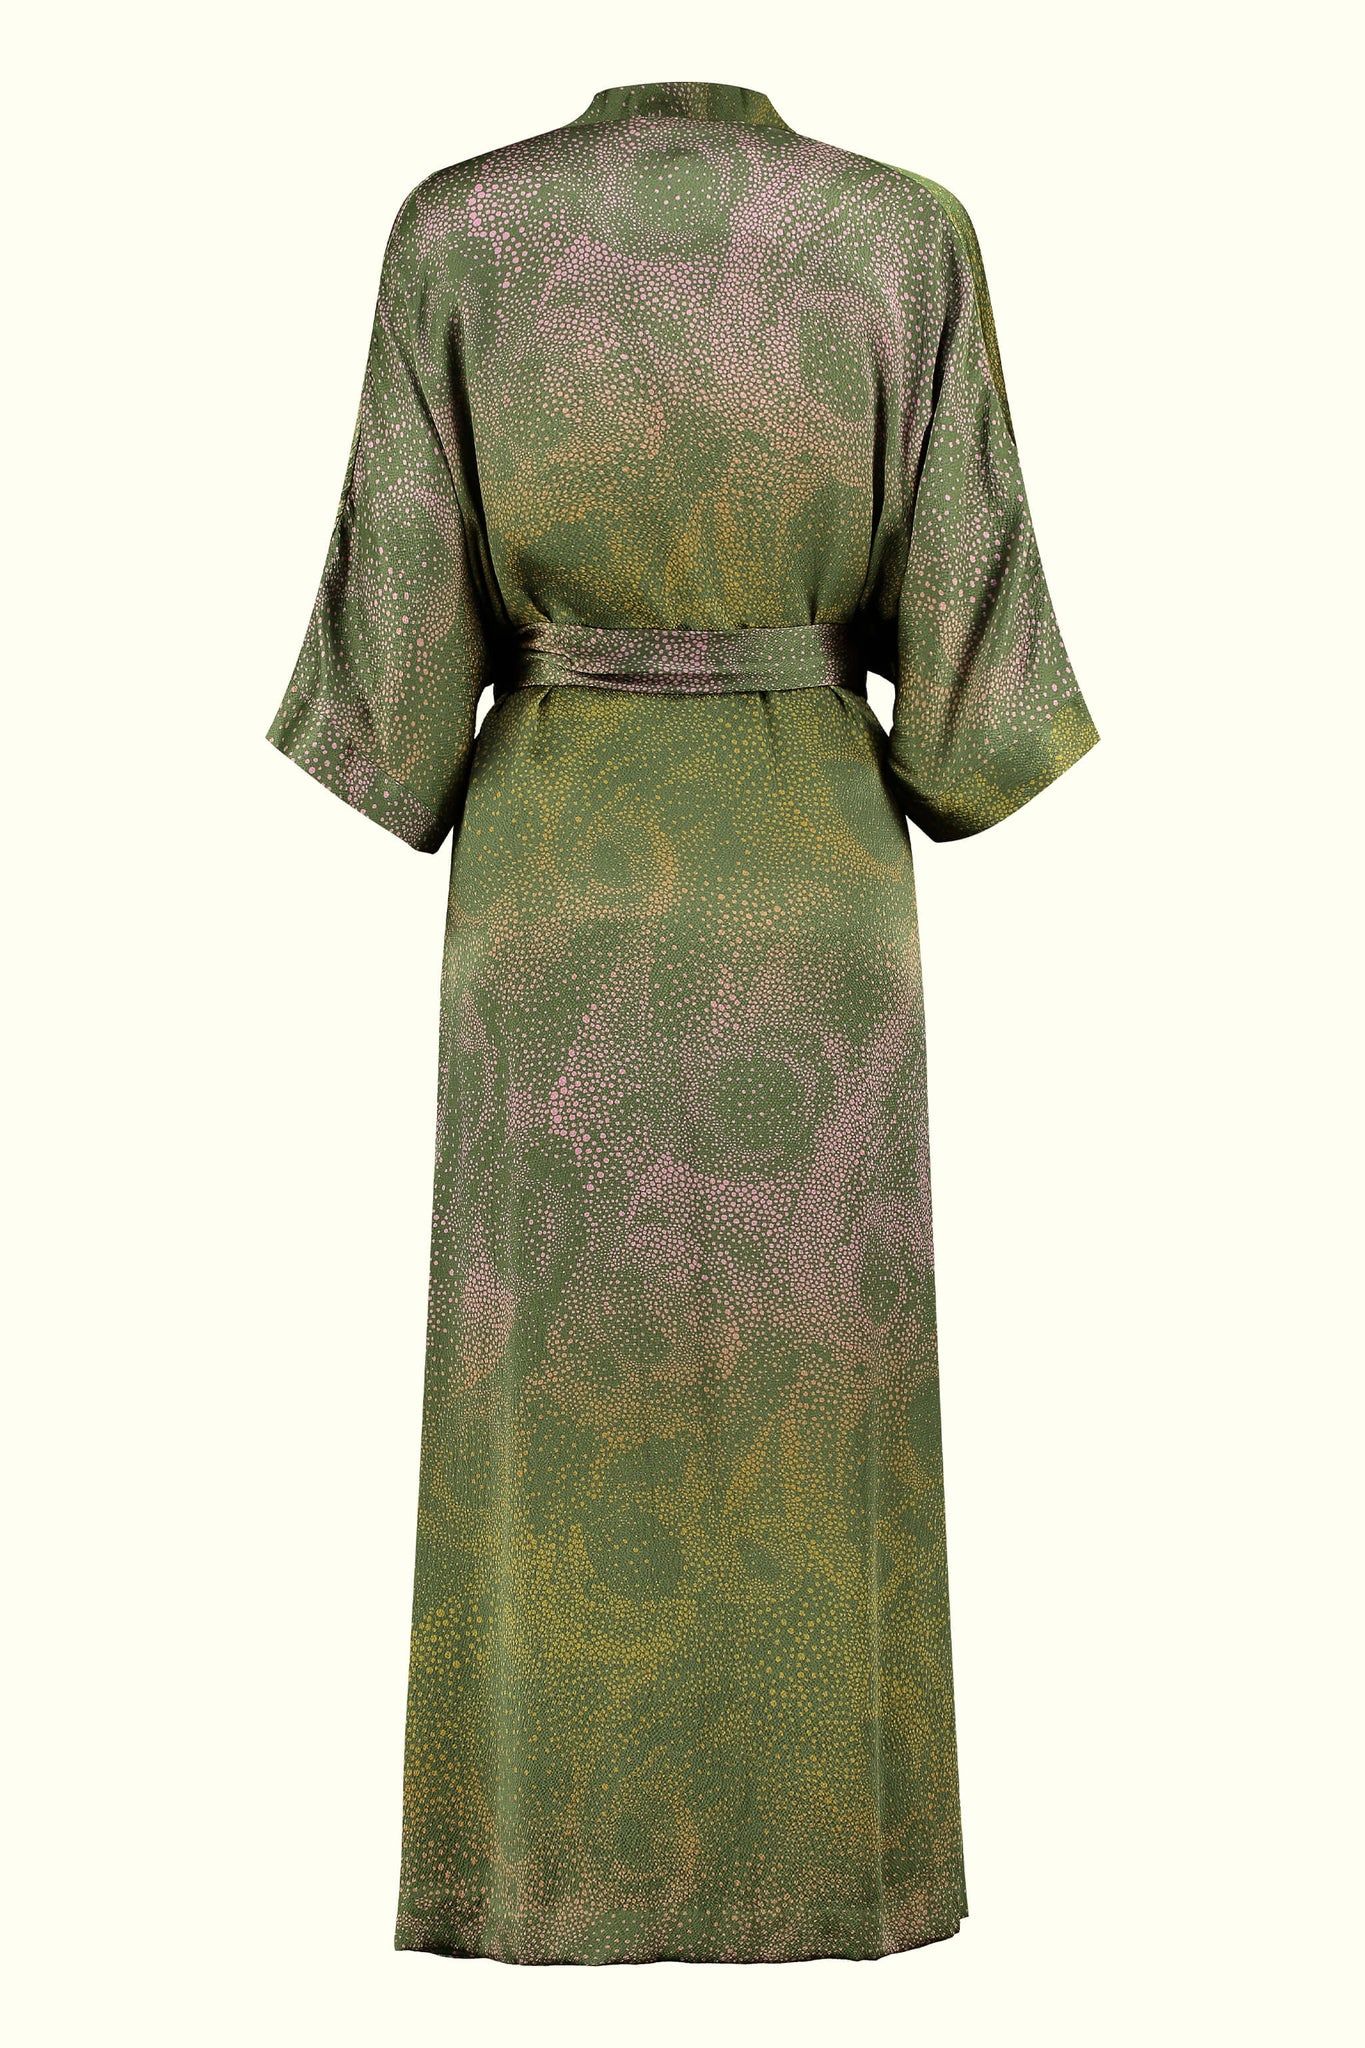 A luxury British silk robe by GVE in olive and pink Aurora print design.